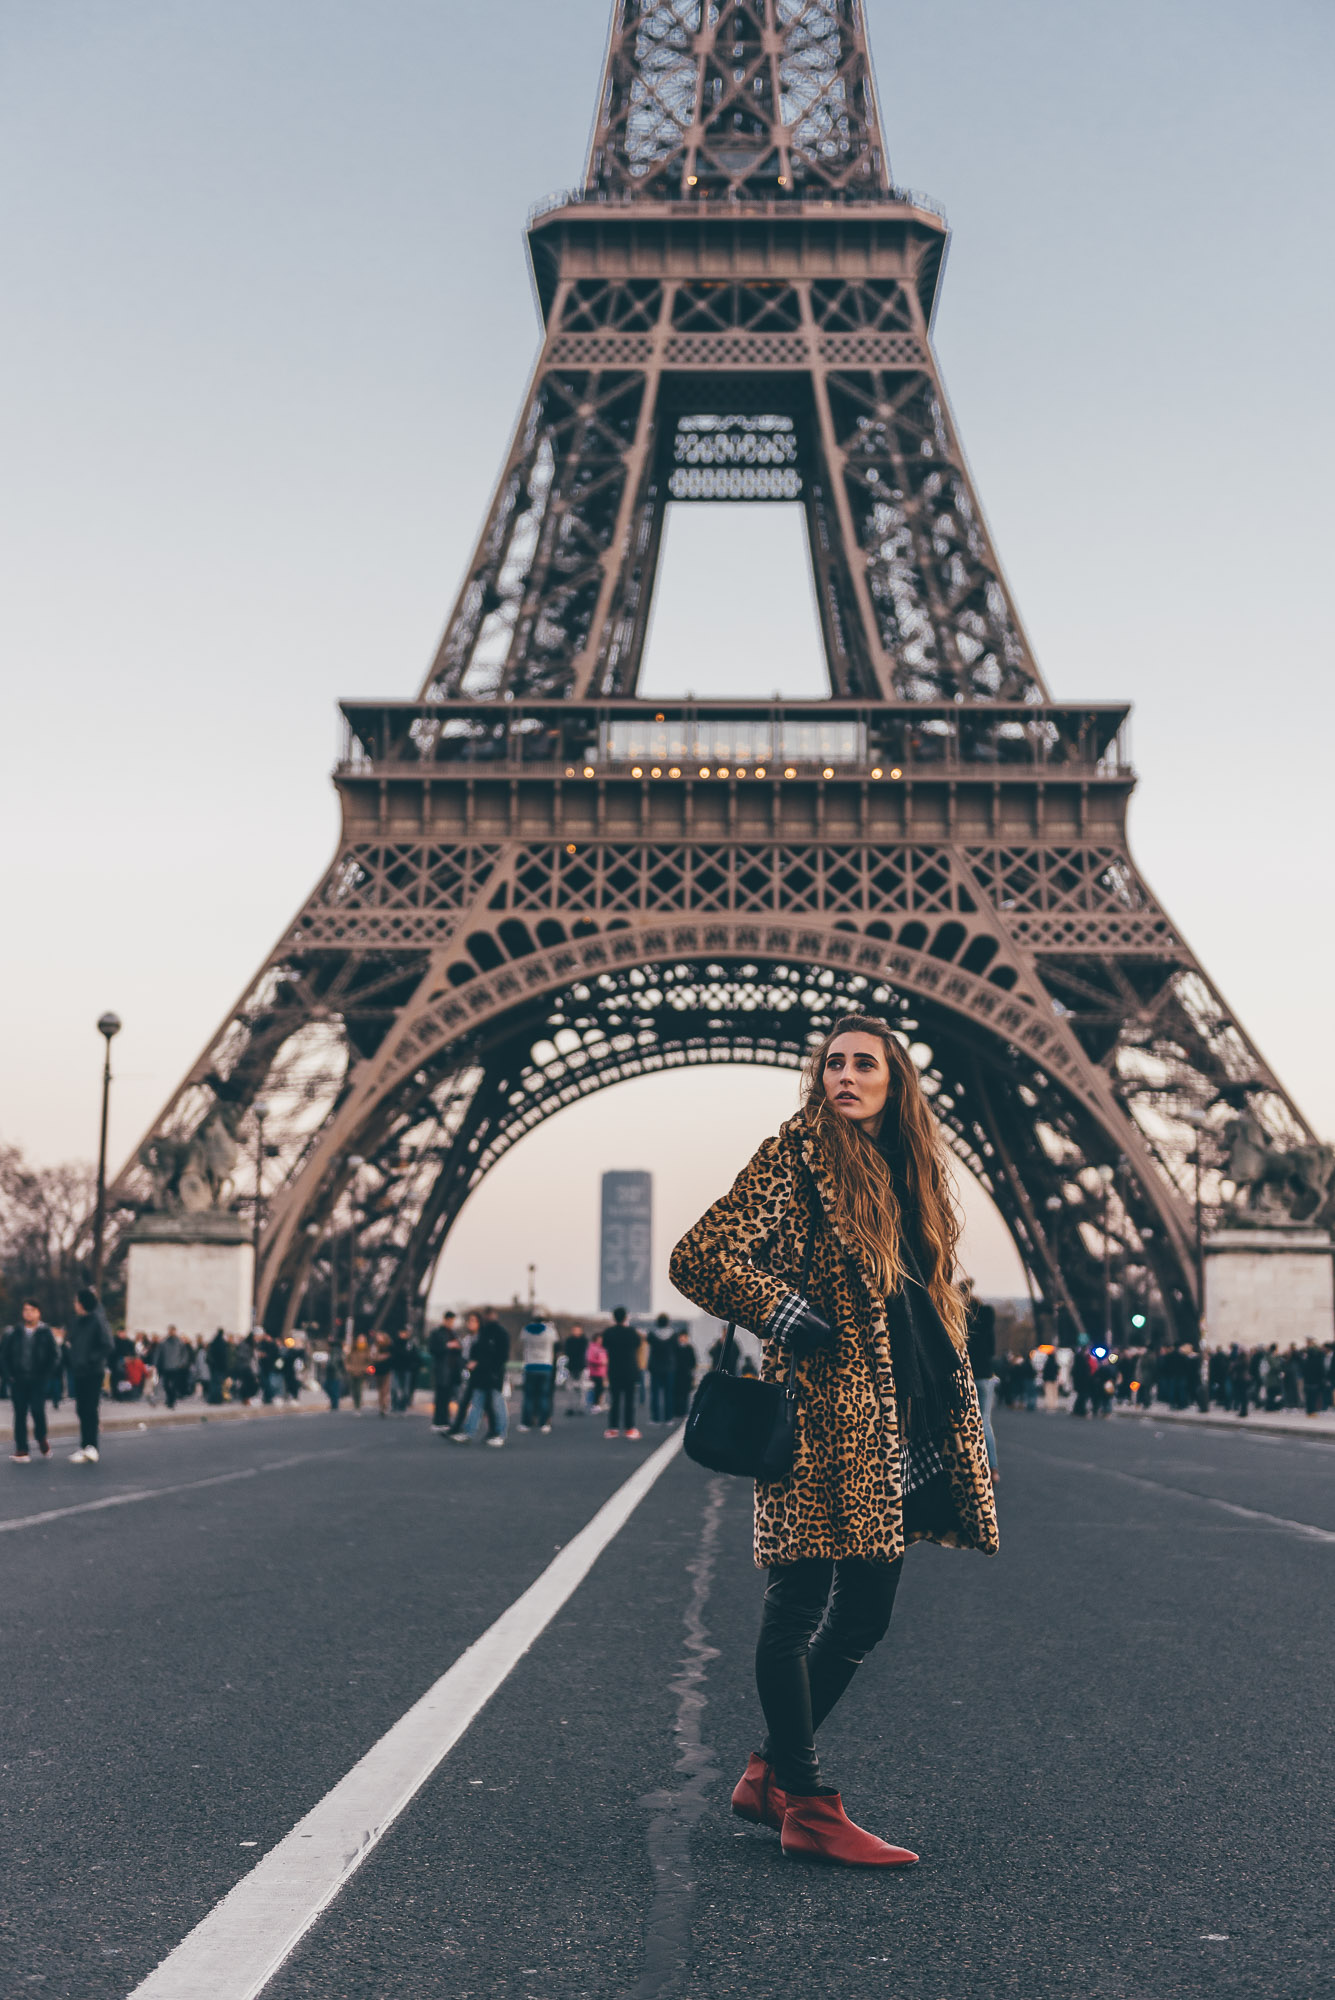 La Tour Eiffel | Eiffel Tower | Lisa Fiege